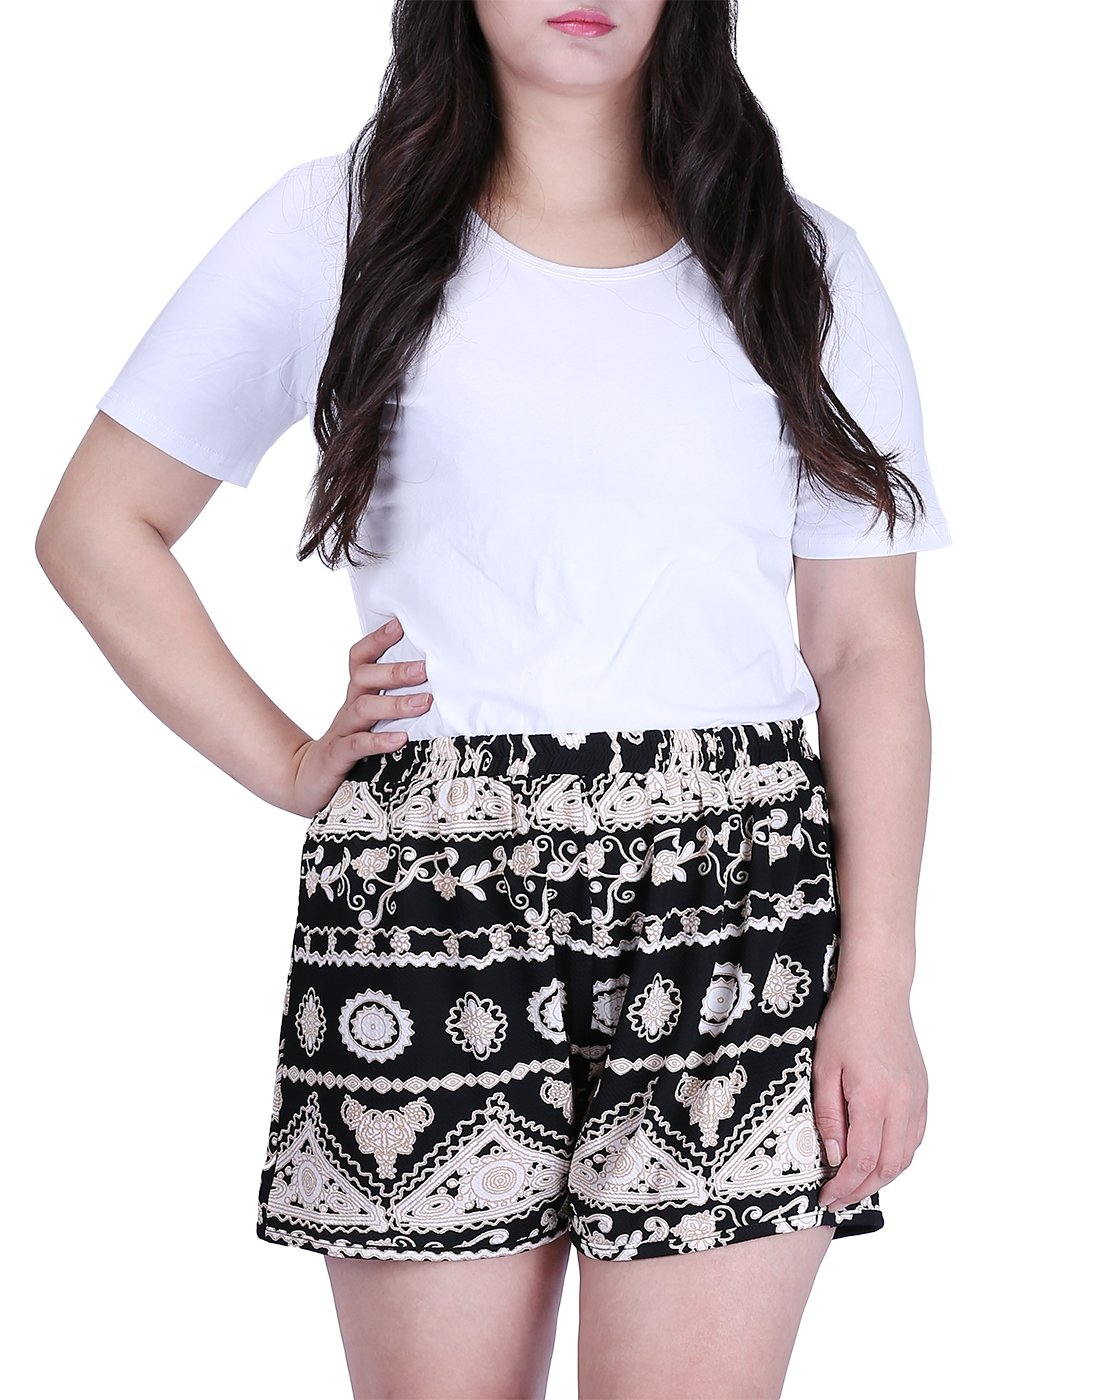 HDE Womens Plus Size Shorts Patterned Casual Pull On Elastic Waist Dress Shorts (Black and White Tribal, 2X)